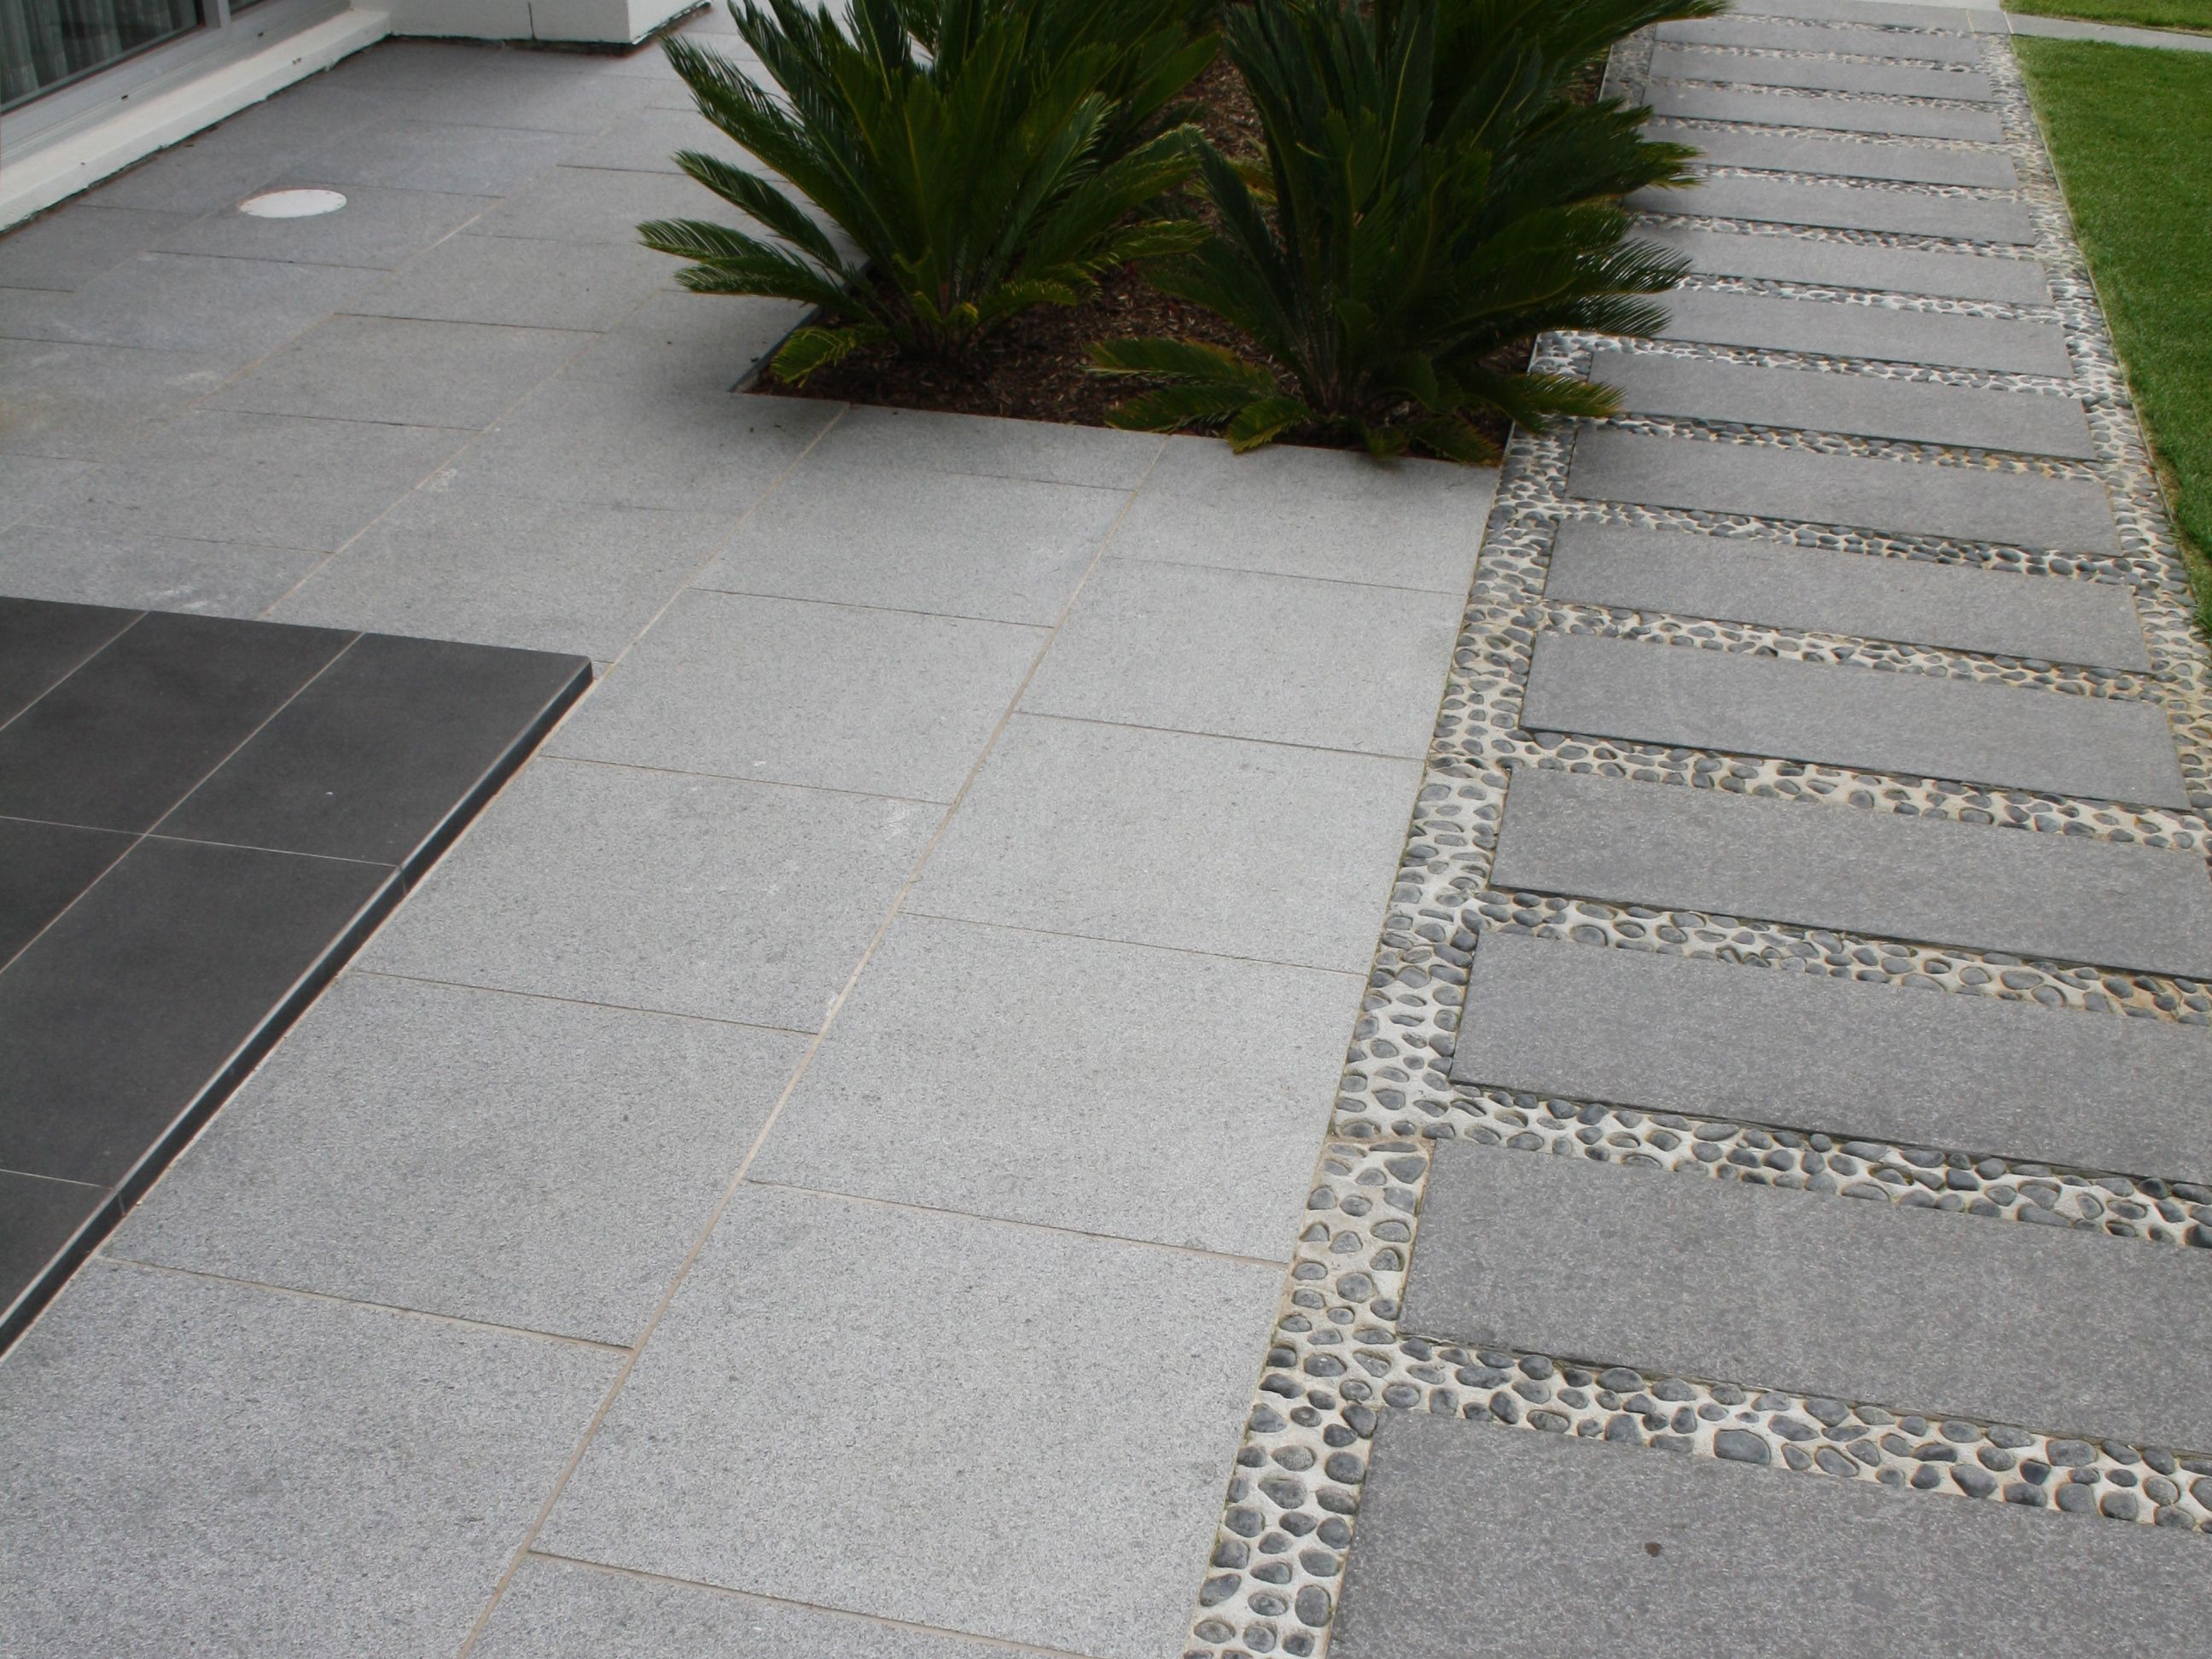 Eco Outdoor Buffalo And Raven Granite Paving With Anvil Pebbles Eco Outdoor Granite Paving Livelifeo Natural Stone Flooring Granite Paving Outdoor Paving